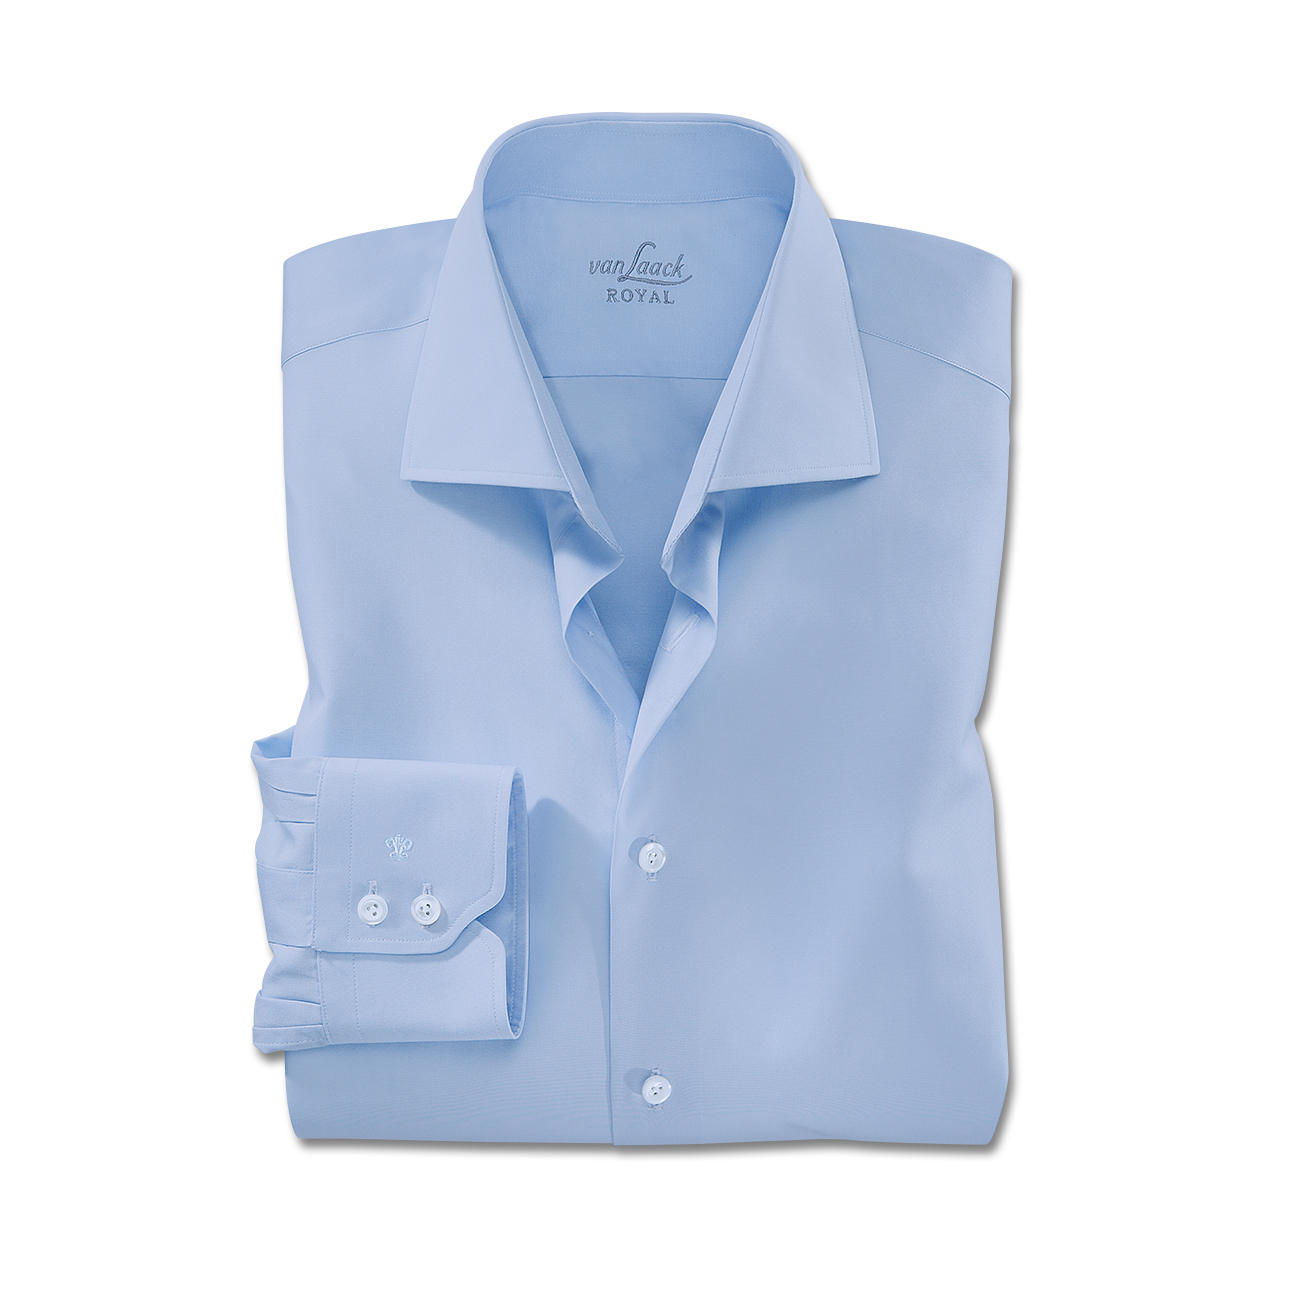 Van Laack Shirts single button cuffs, light blue OBZVDGC